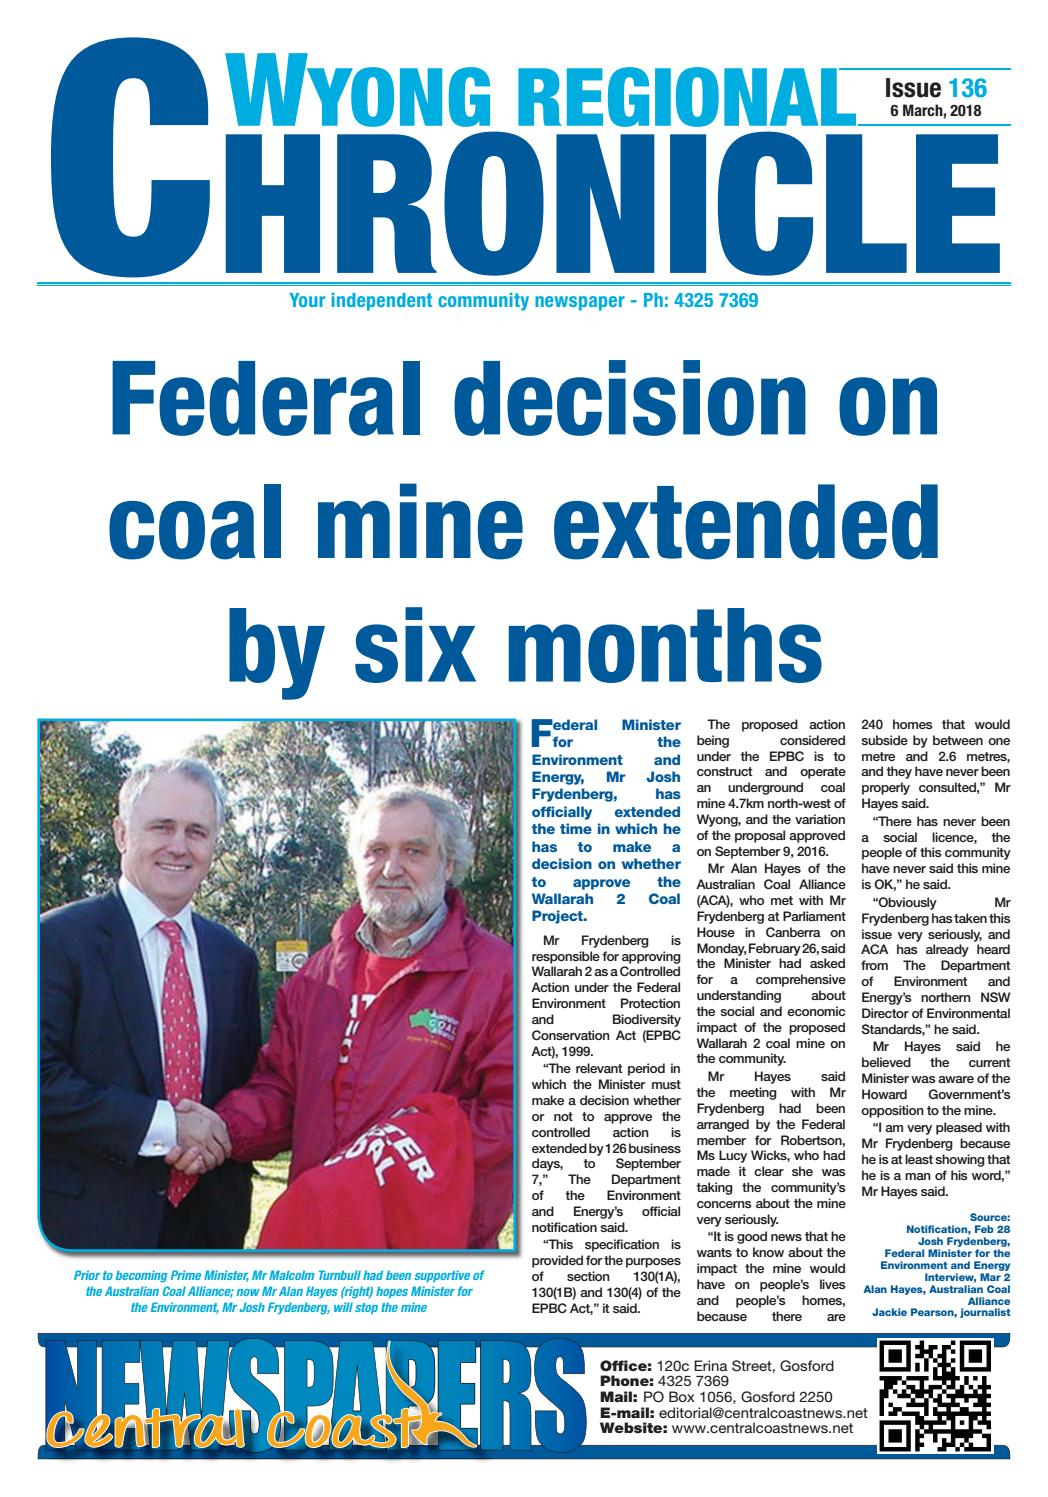 Issue 136 of Wyong Regional Chronicle by Central Coast